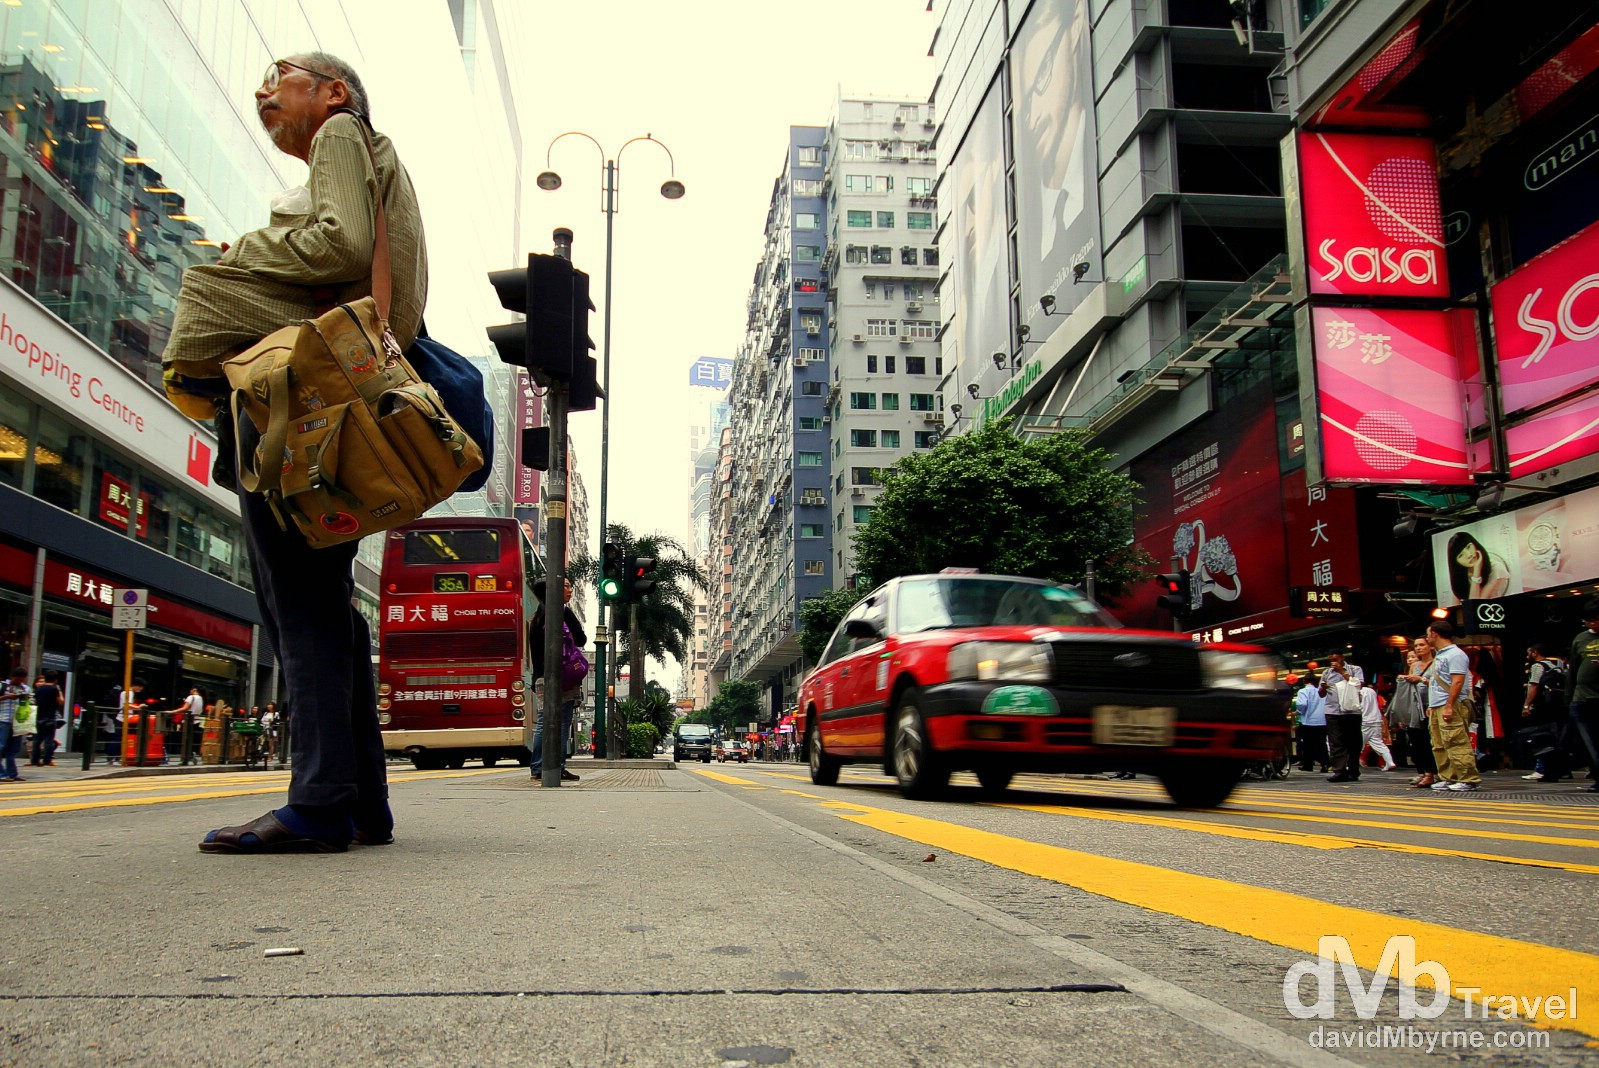 Activity in the middle of a busy Nathan Road, Kowloon, Hong Kong. October 18th 2012.